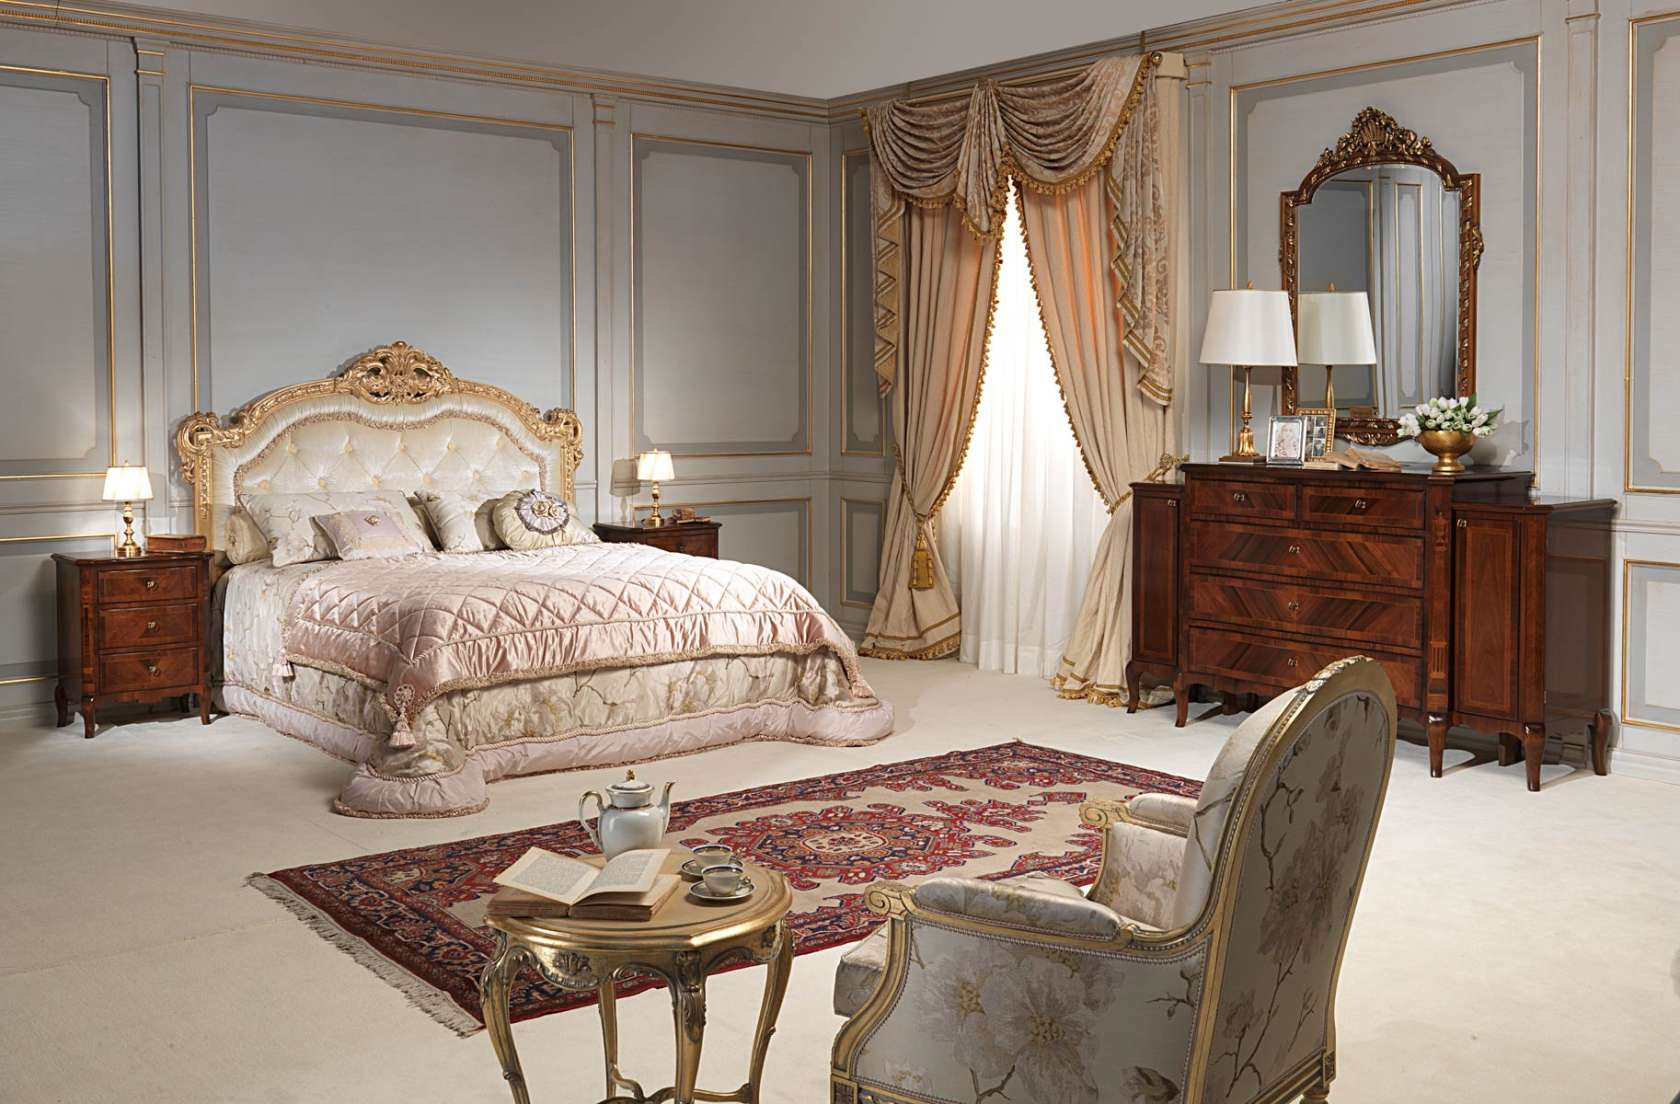 Classic luxury bedroom 800 francese, capitonné bed, gold leaf finish ...